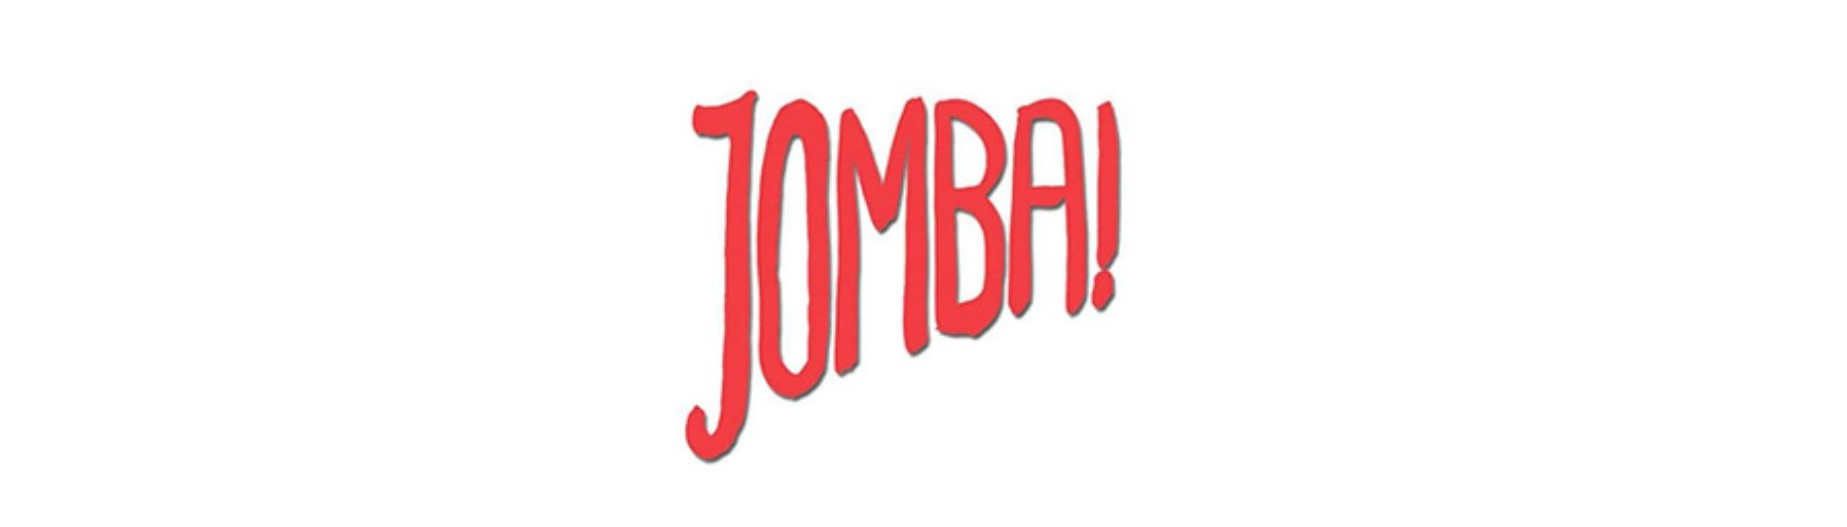 The word Jombai in red capital text on a white background